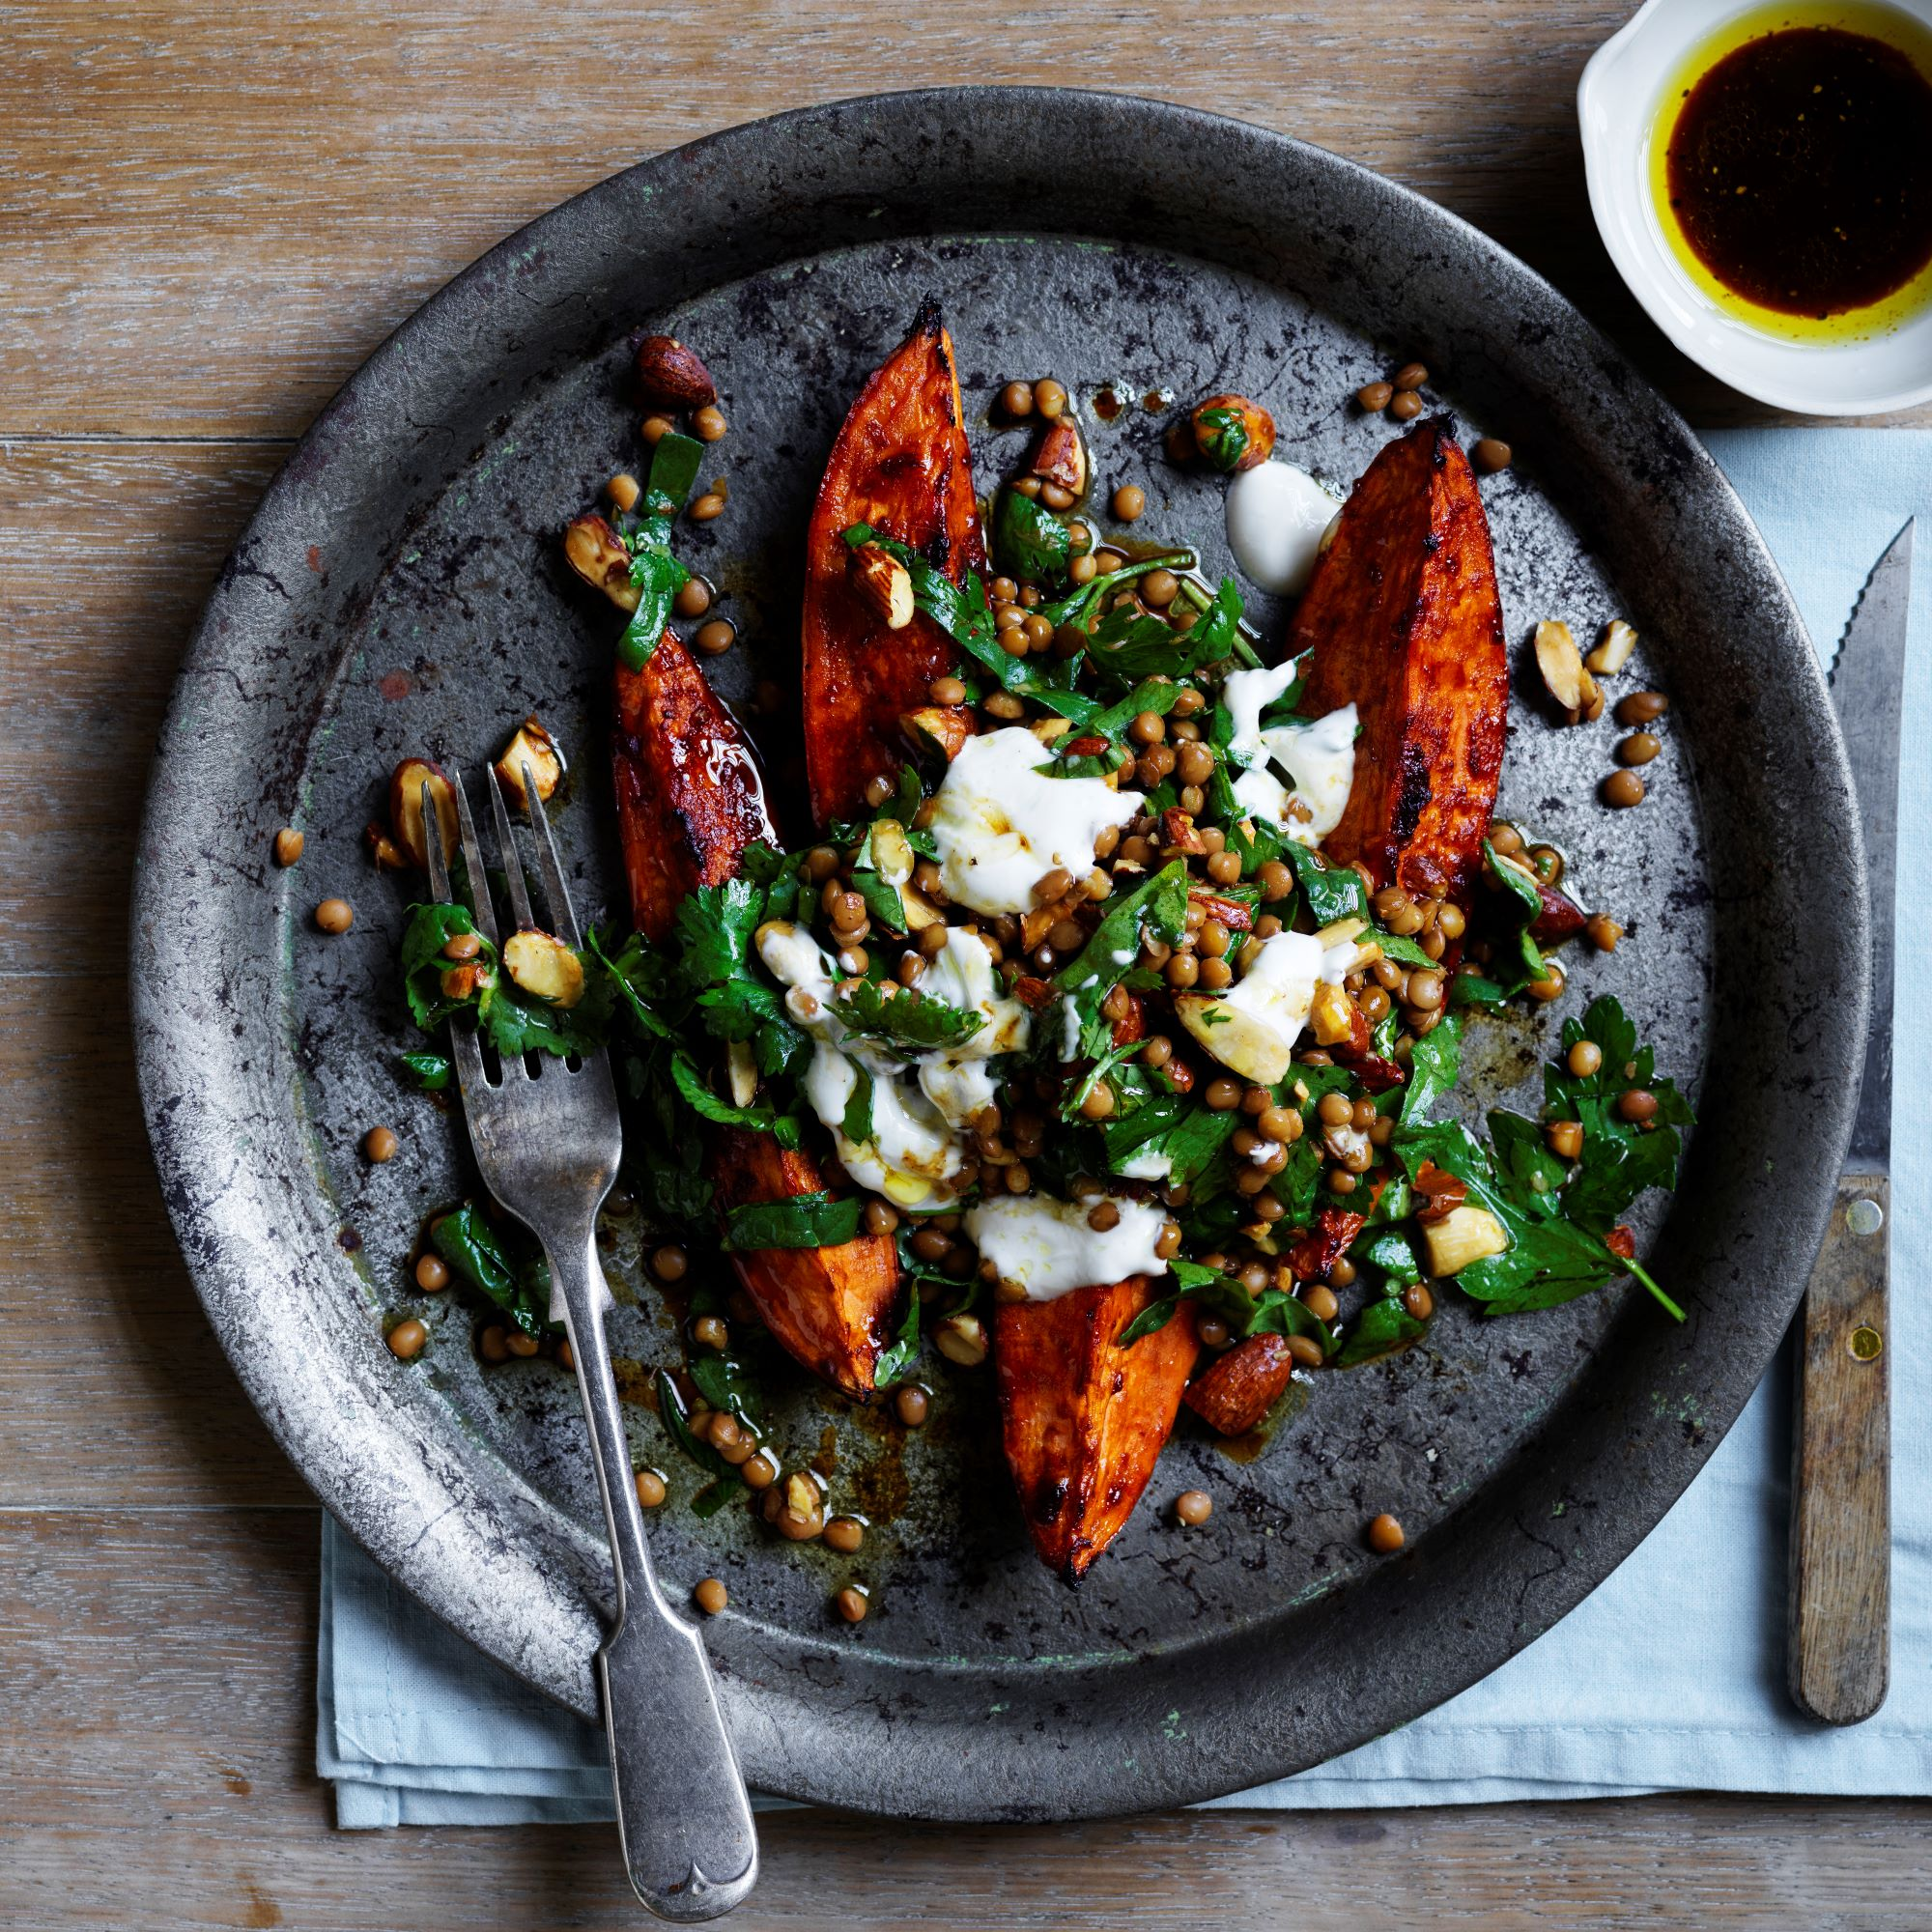 Sweet potato lentil and spinach salad